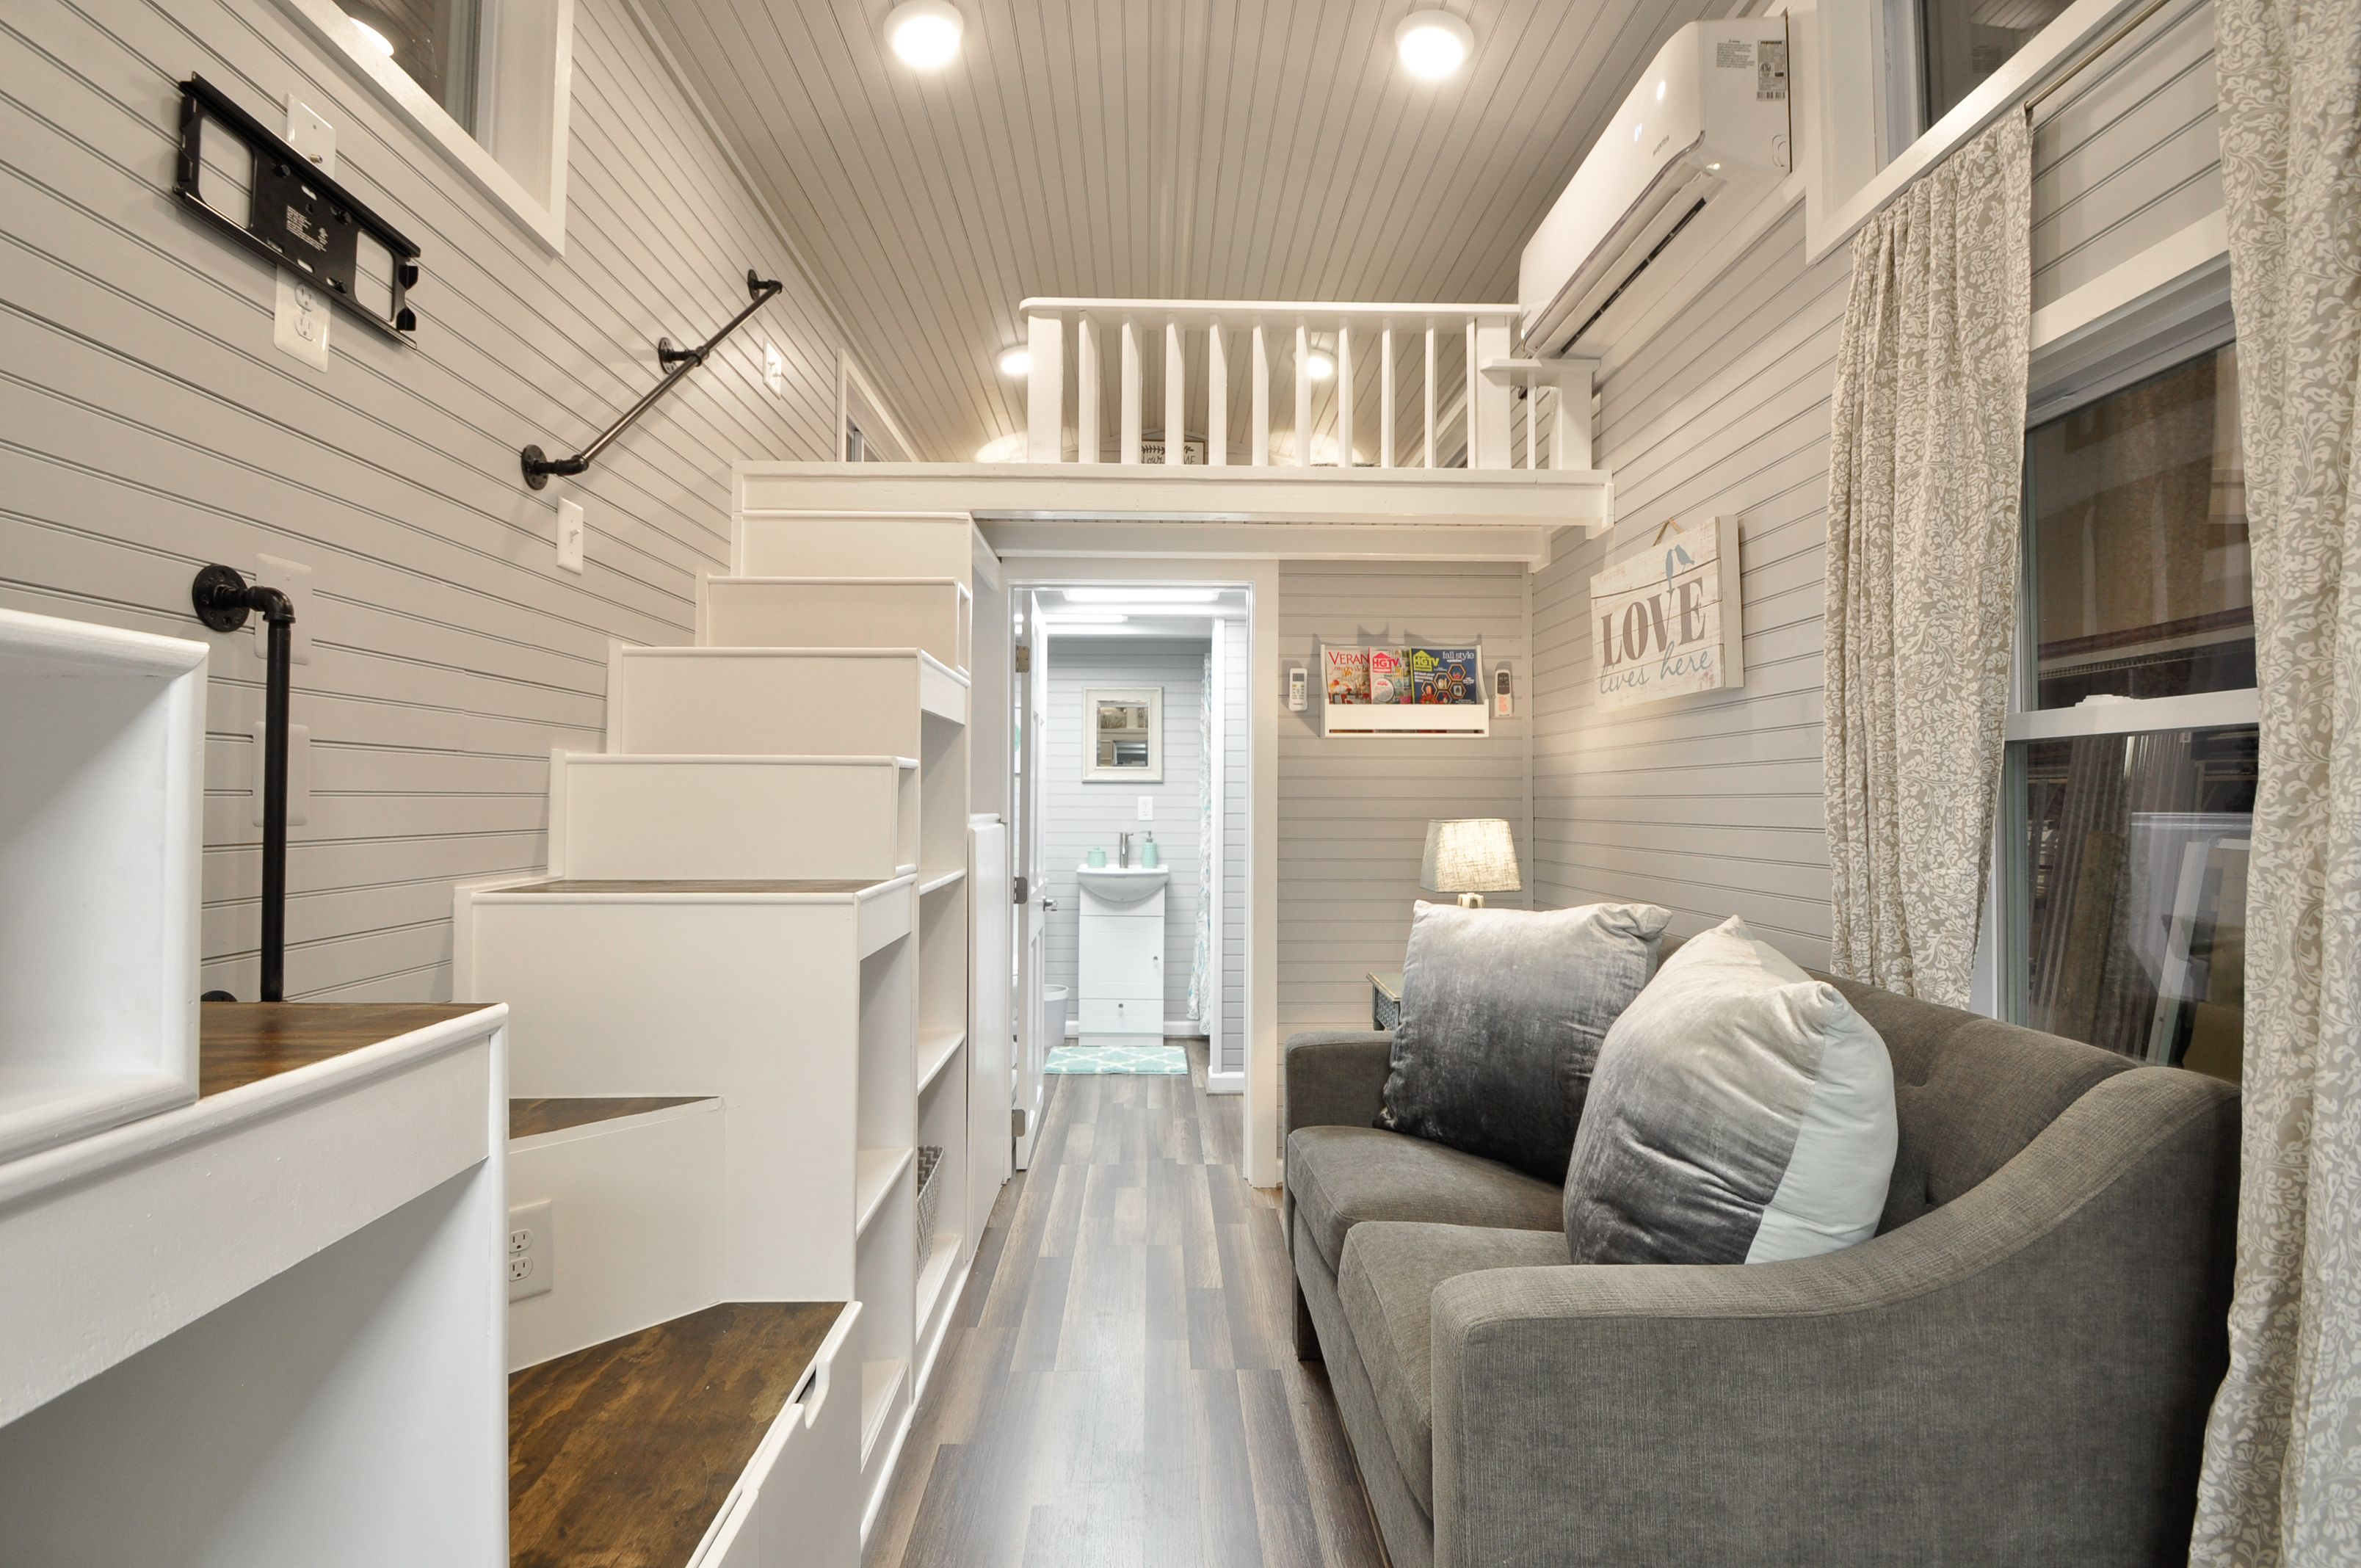 Modern & Spacious, The Kate Tiny House Features A Full